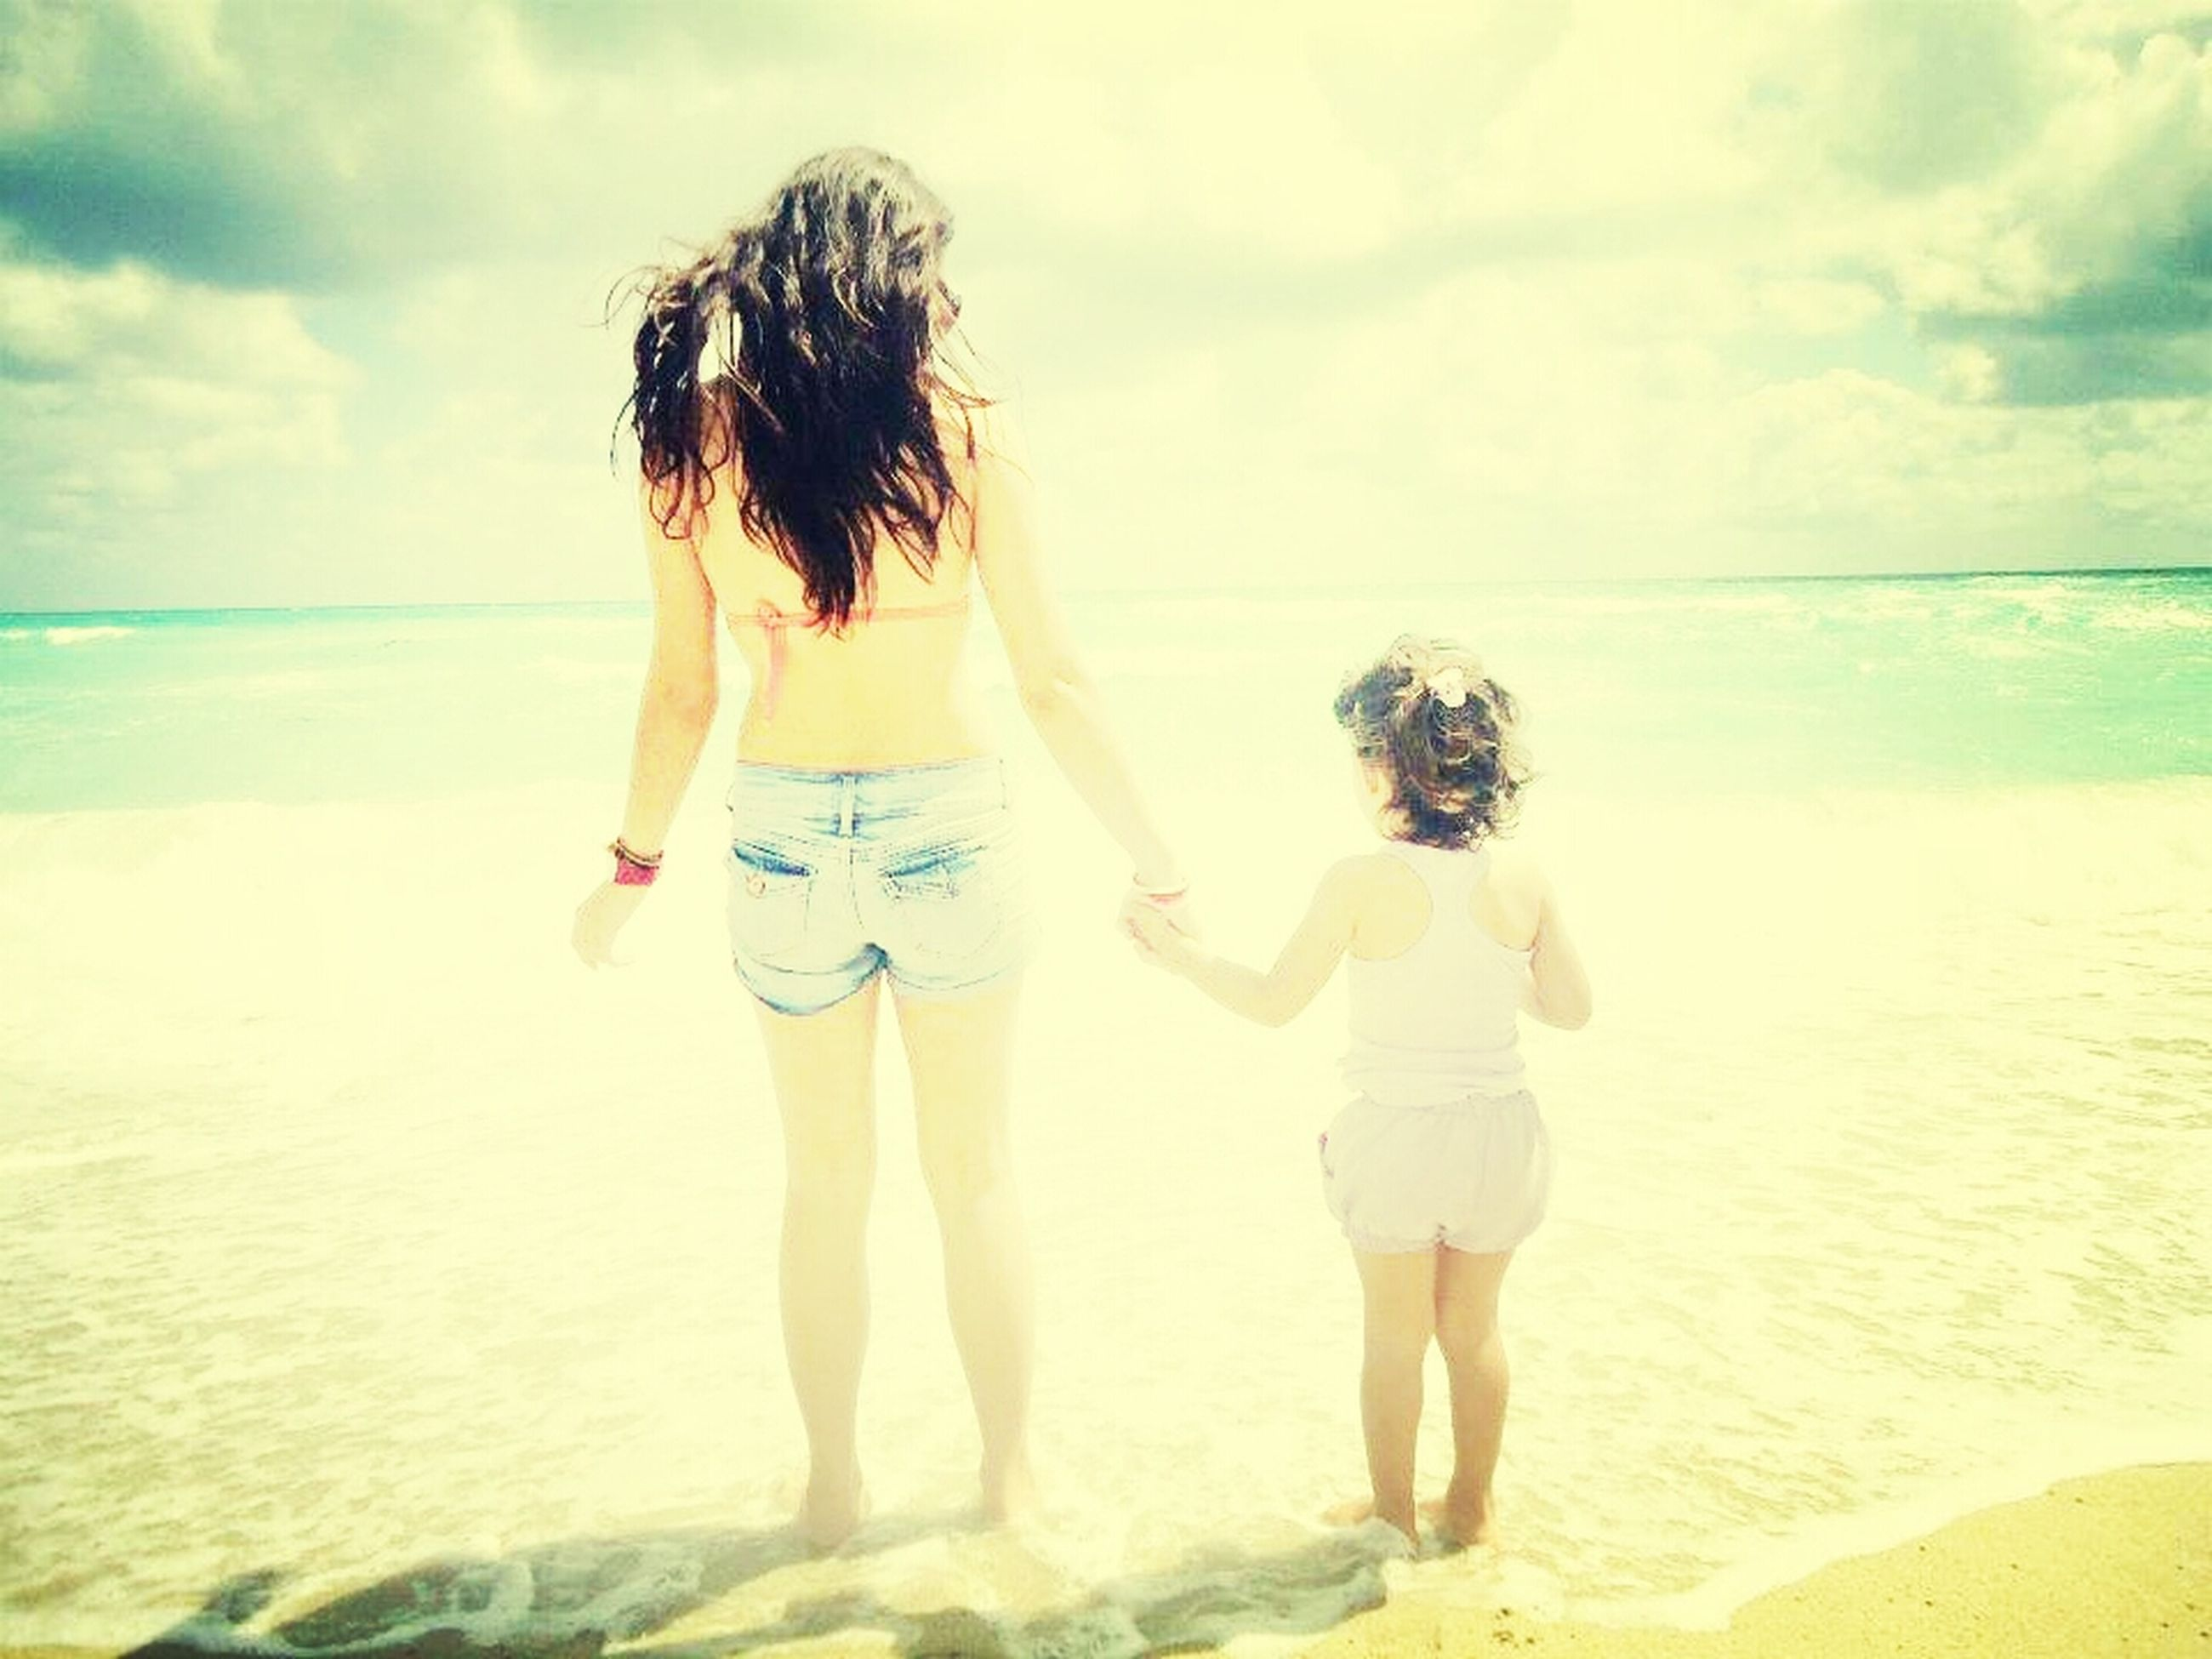 beach, sea, horizon over water, lifestyles, water, leisure activity, sky, shore, rear view, sand, vacations, full length, standing, person, togetherness, casual clothing, beauty in nature, bonding